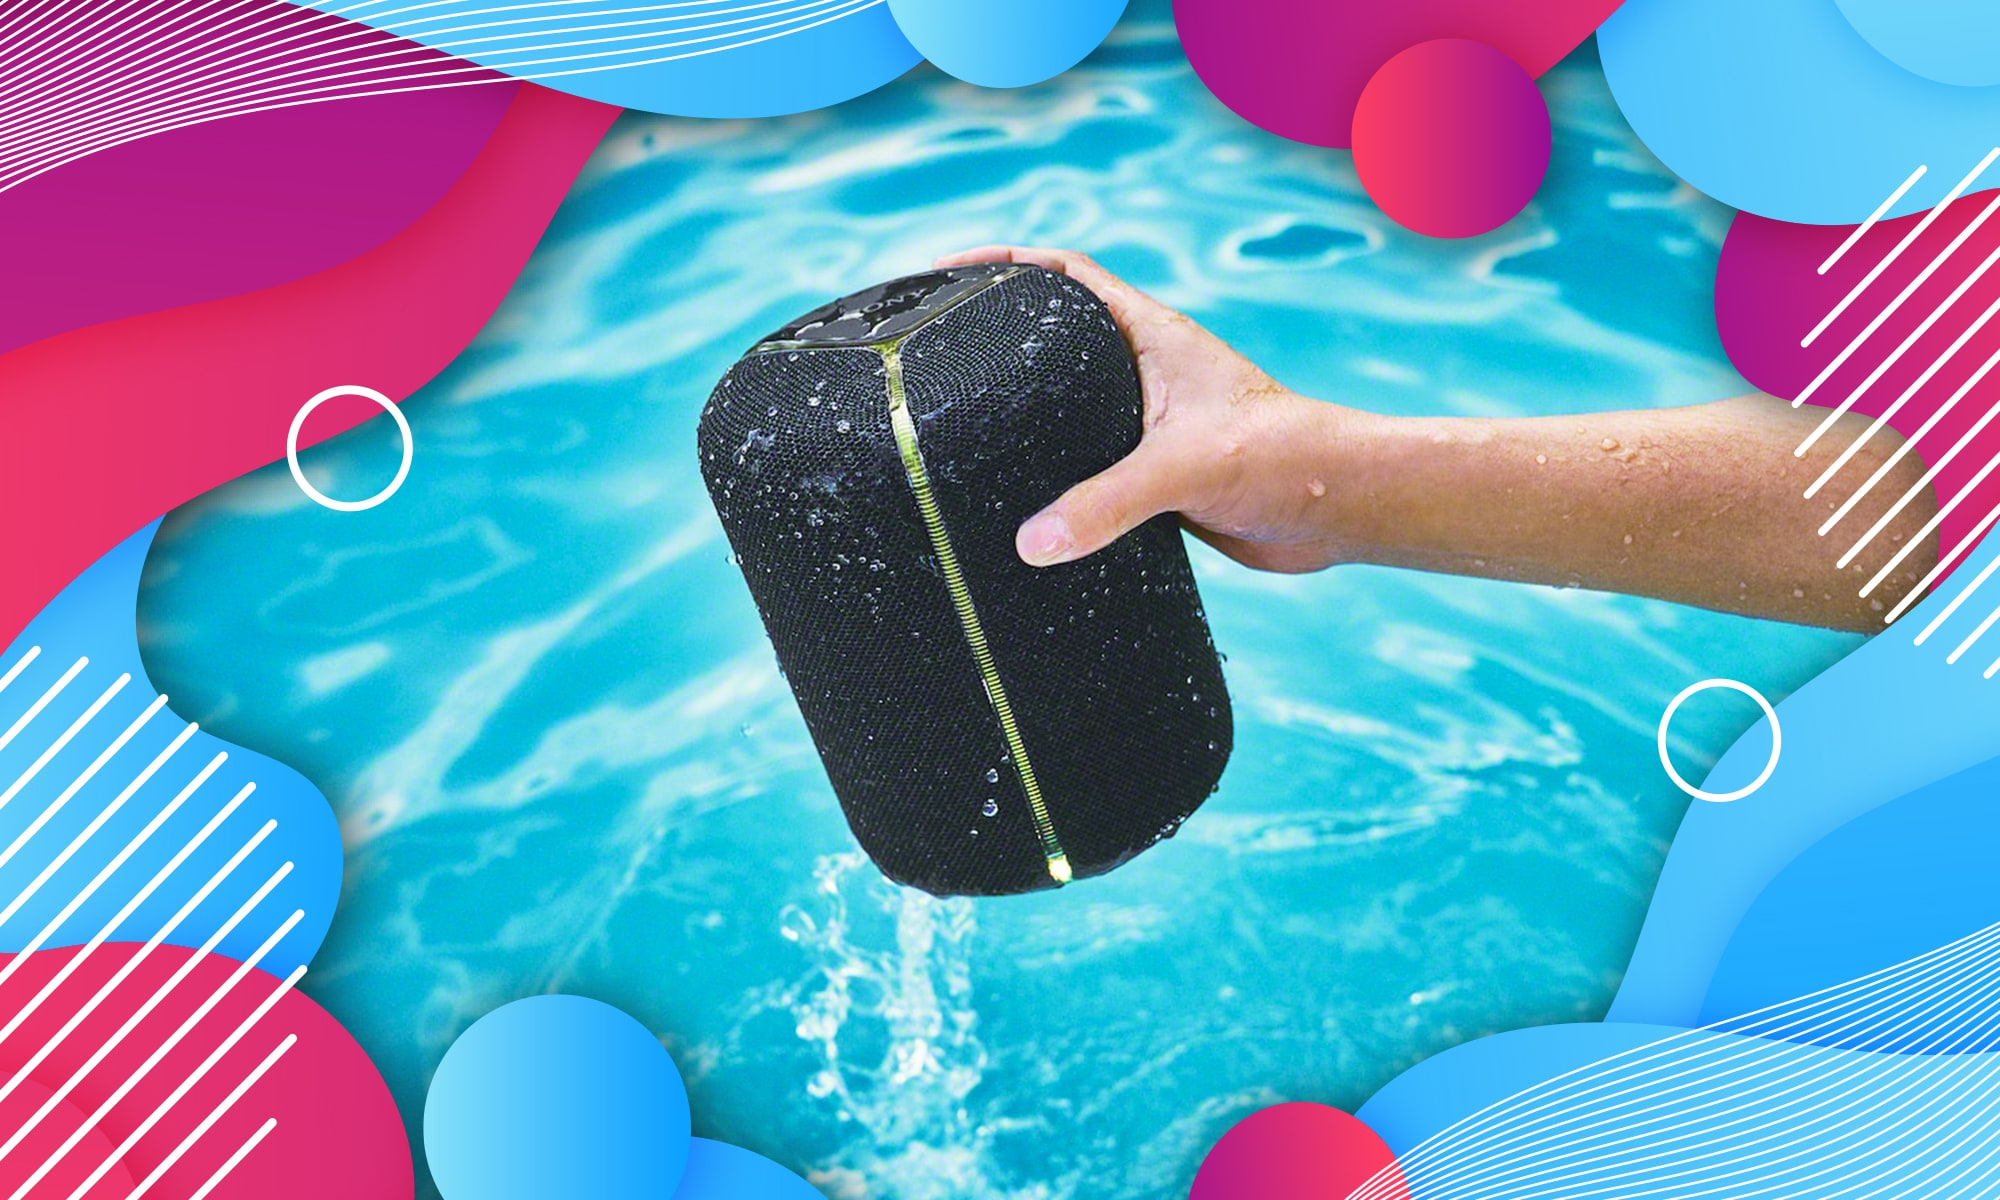 The best waterproof speakers you'll want to add to your next summer pool party setup